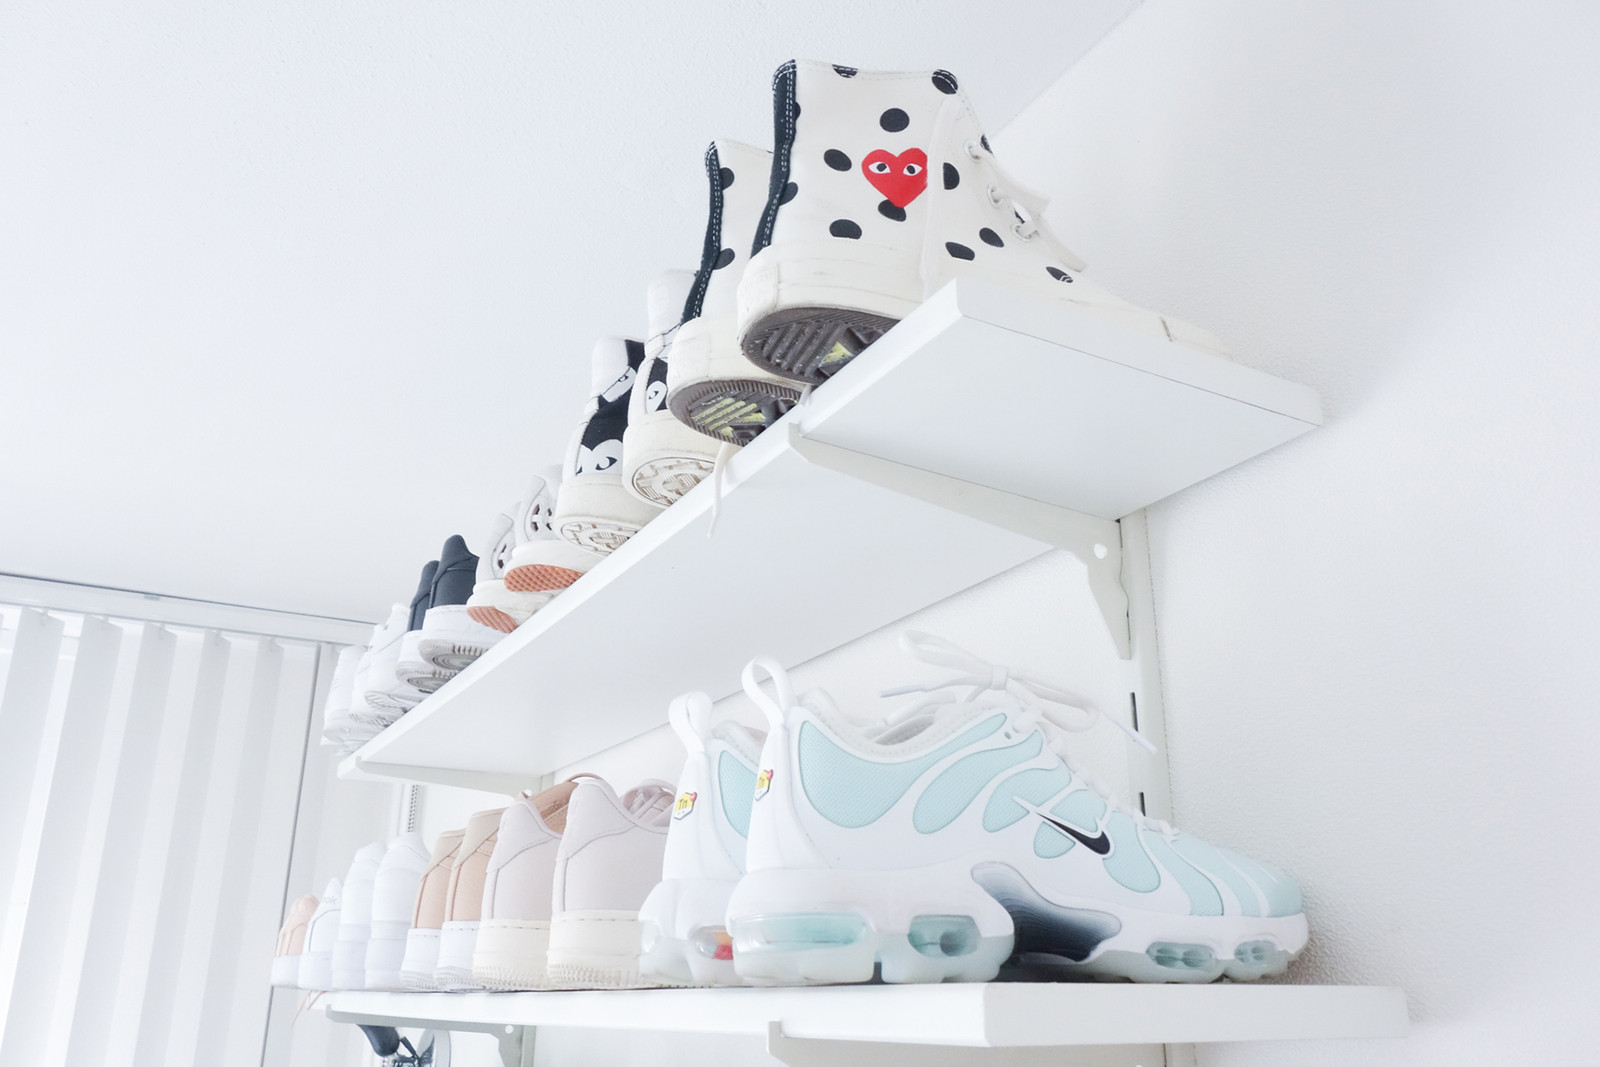 Ginney Noa Rotterdam Dutch the Netherlands Sneakerhead Sneaker HYPEBAE Collection Nike Puma Vans Maha Amsterdam Blue Ribbon Sports Air Max 1 Woei Patta